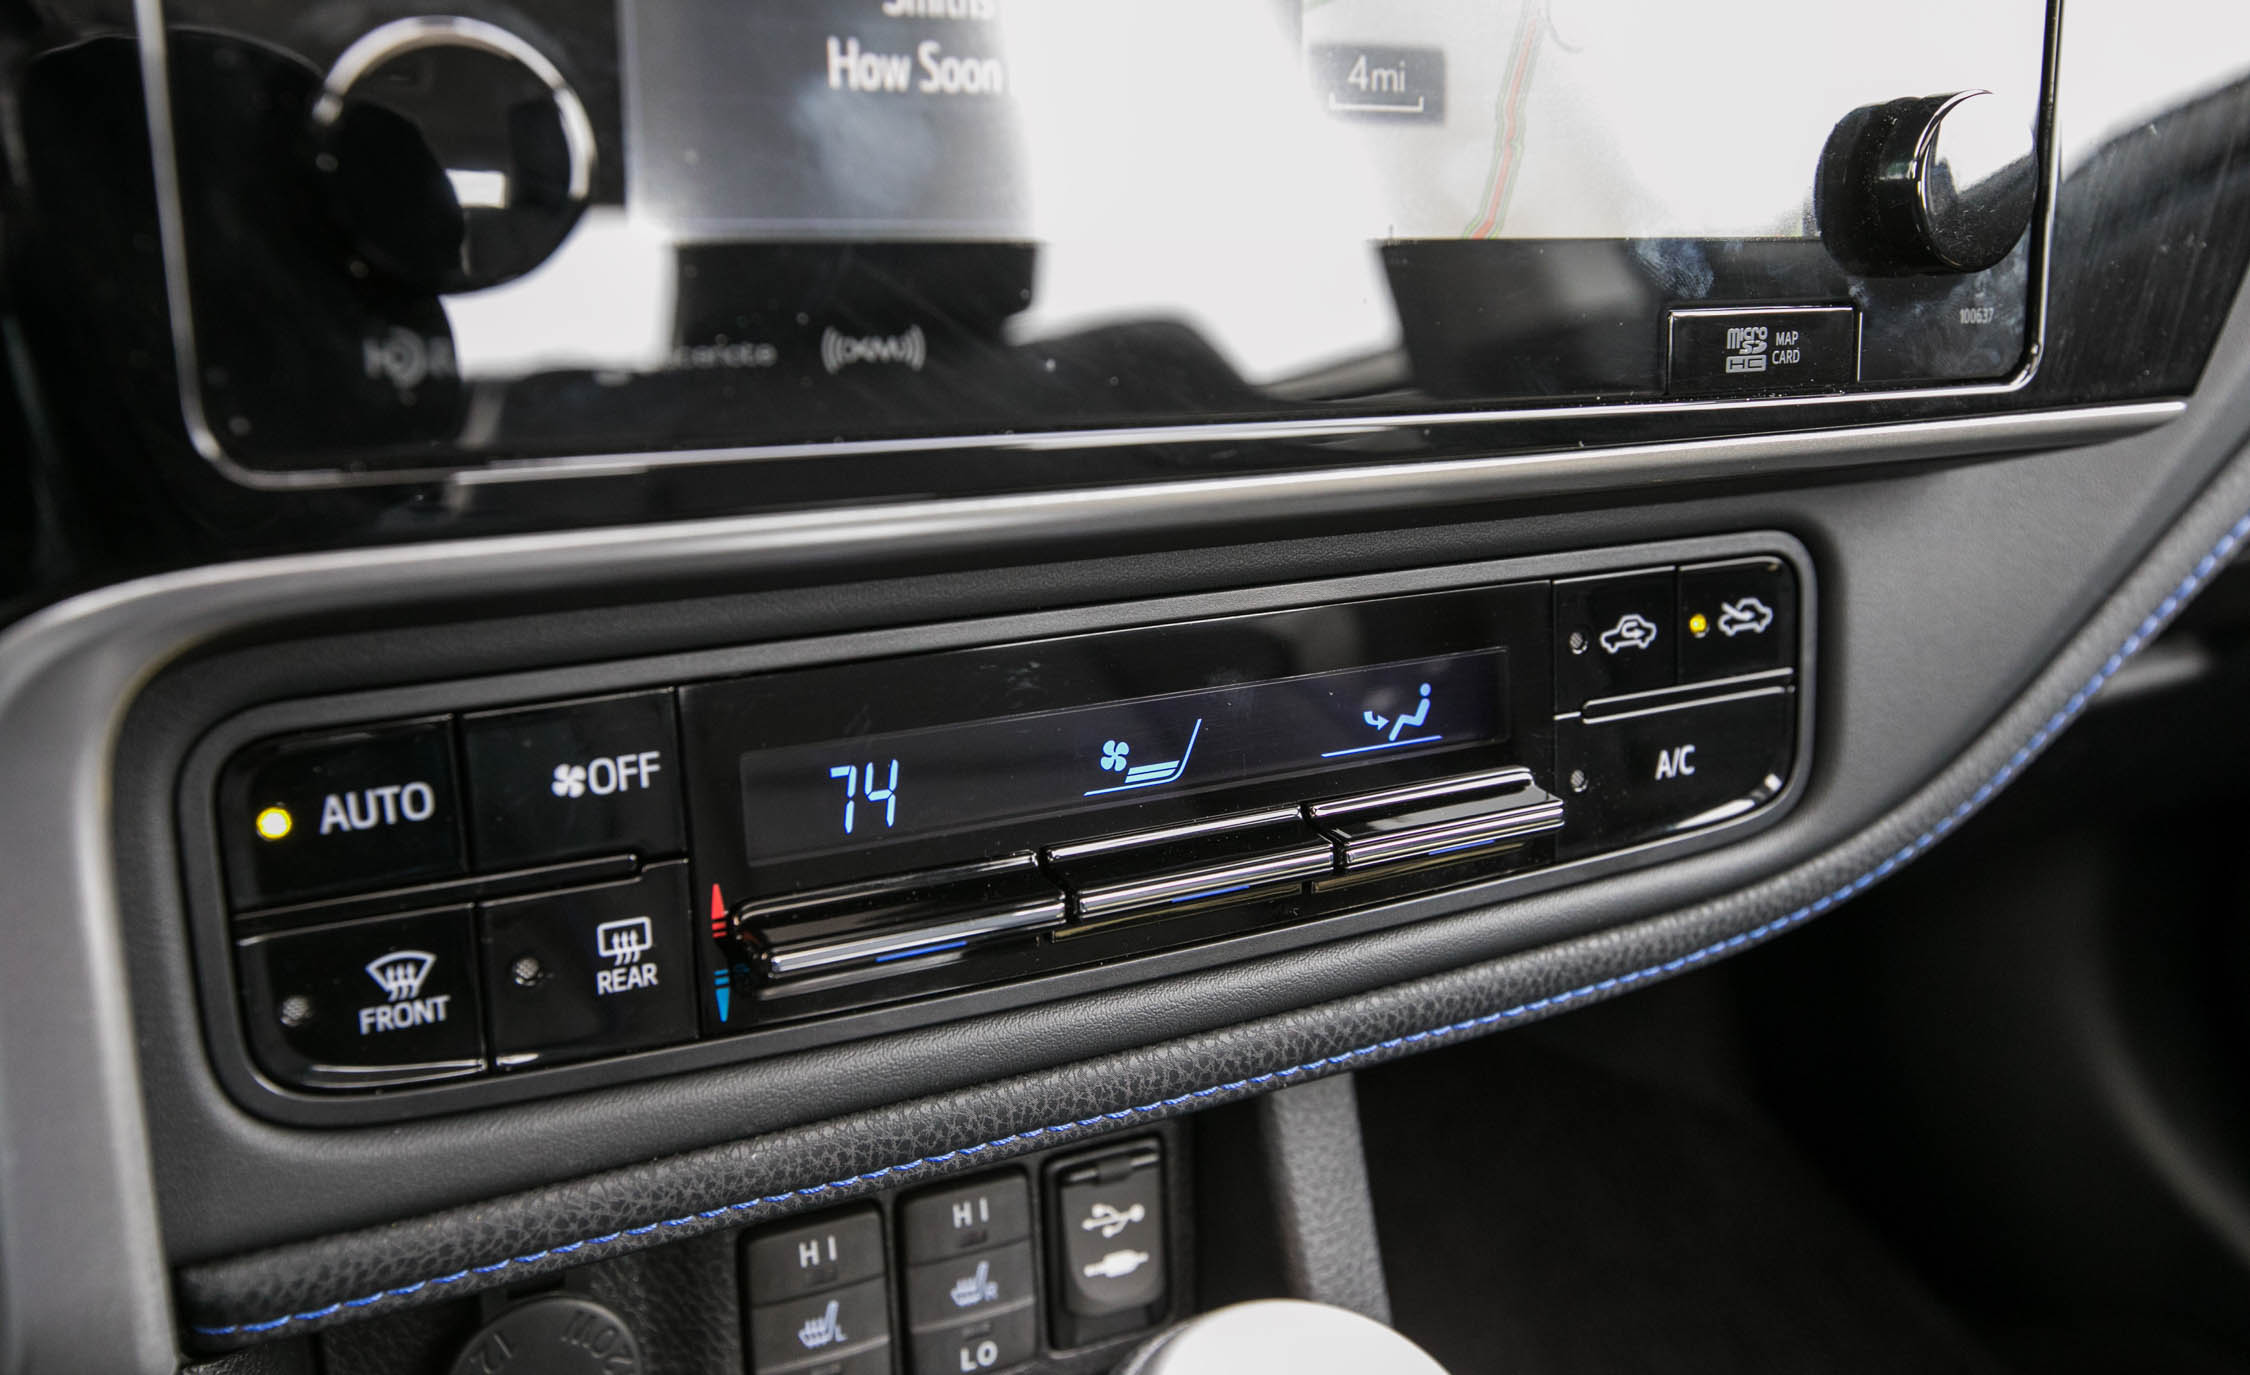 2017 Toyota Corolla XSE Interior View Climate Control (Photo 59 of 75)